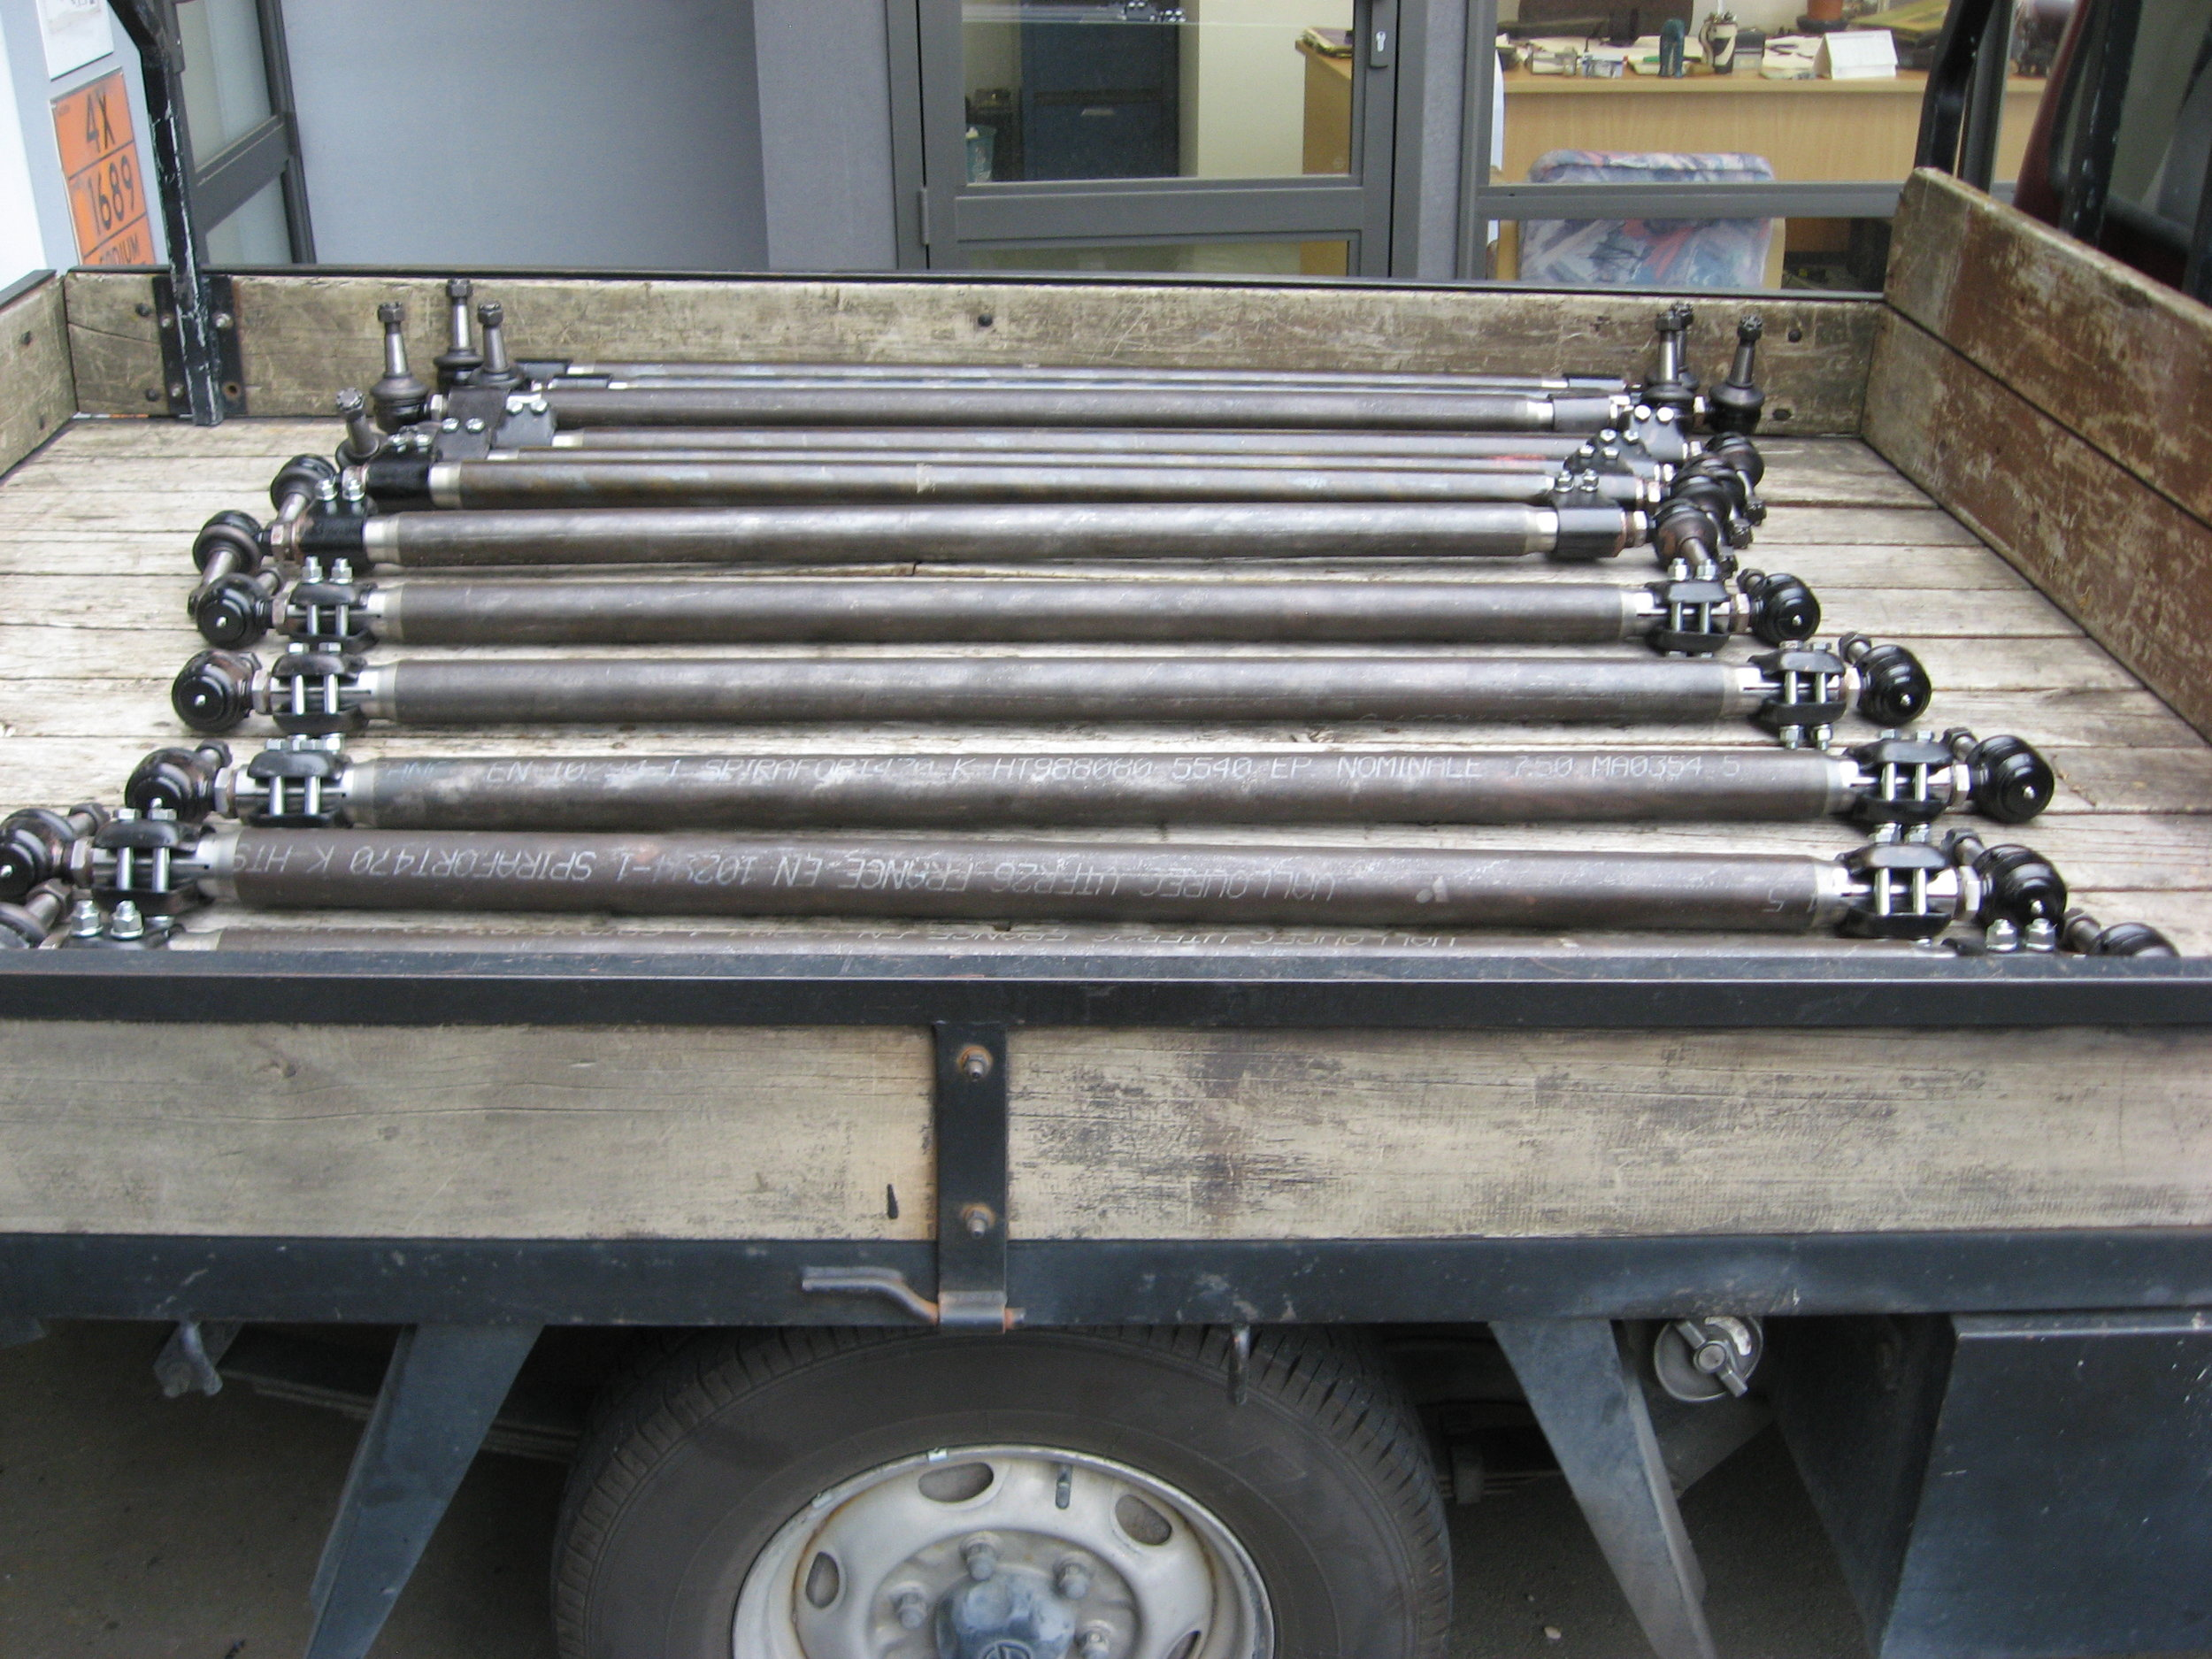 Thirteen new tie rod assemblies completed by HBI Engineering, ready for delivery.